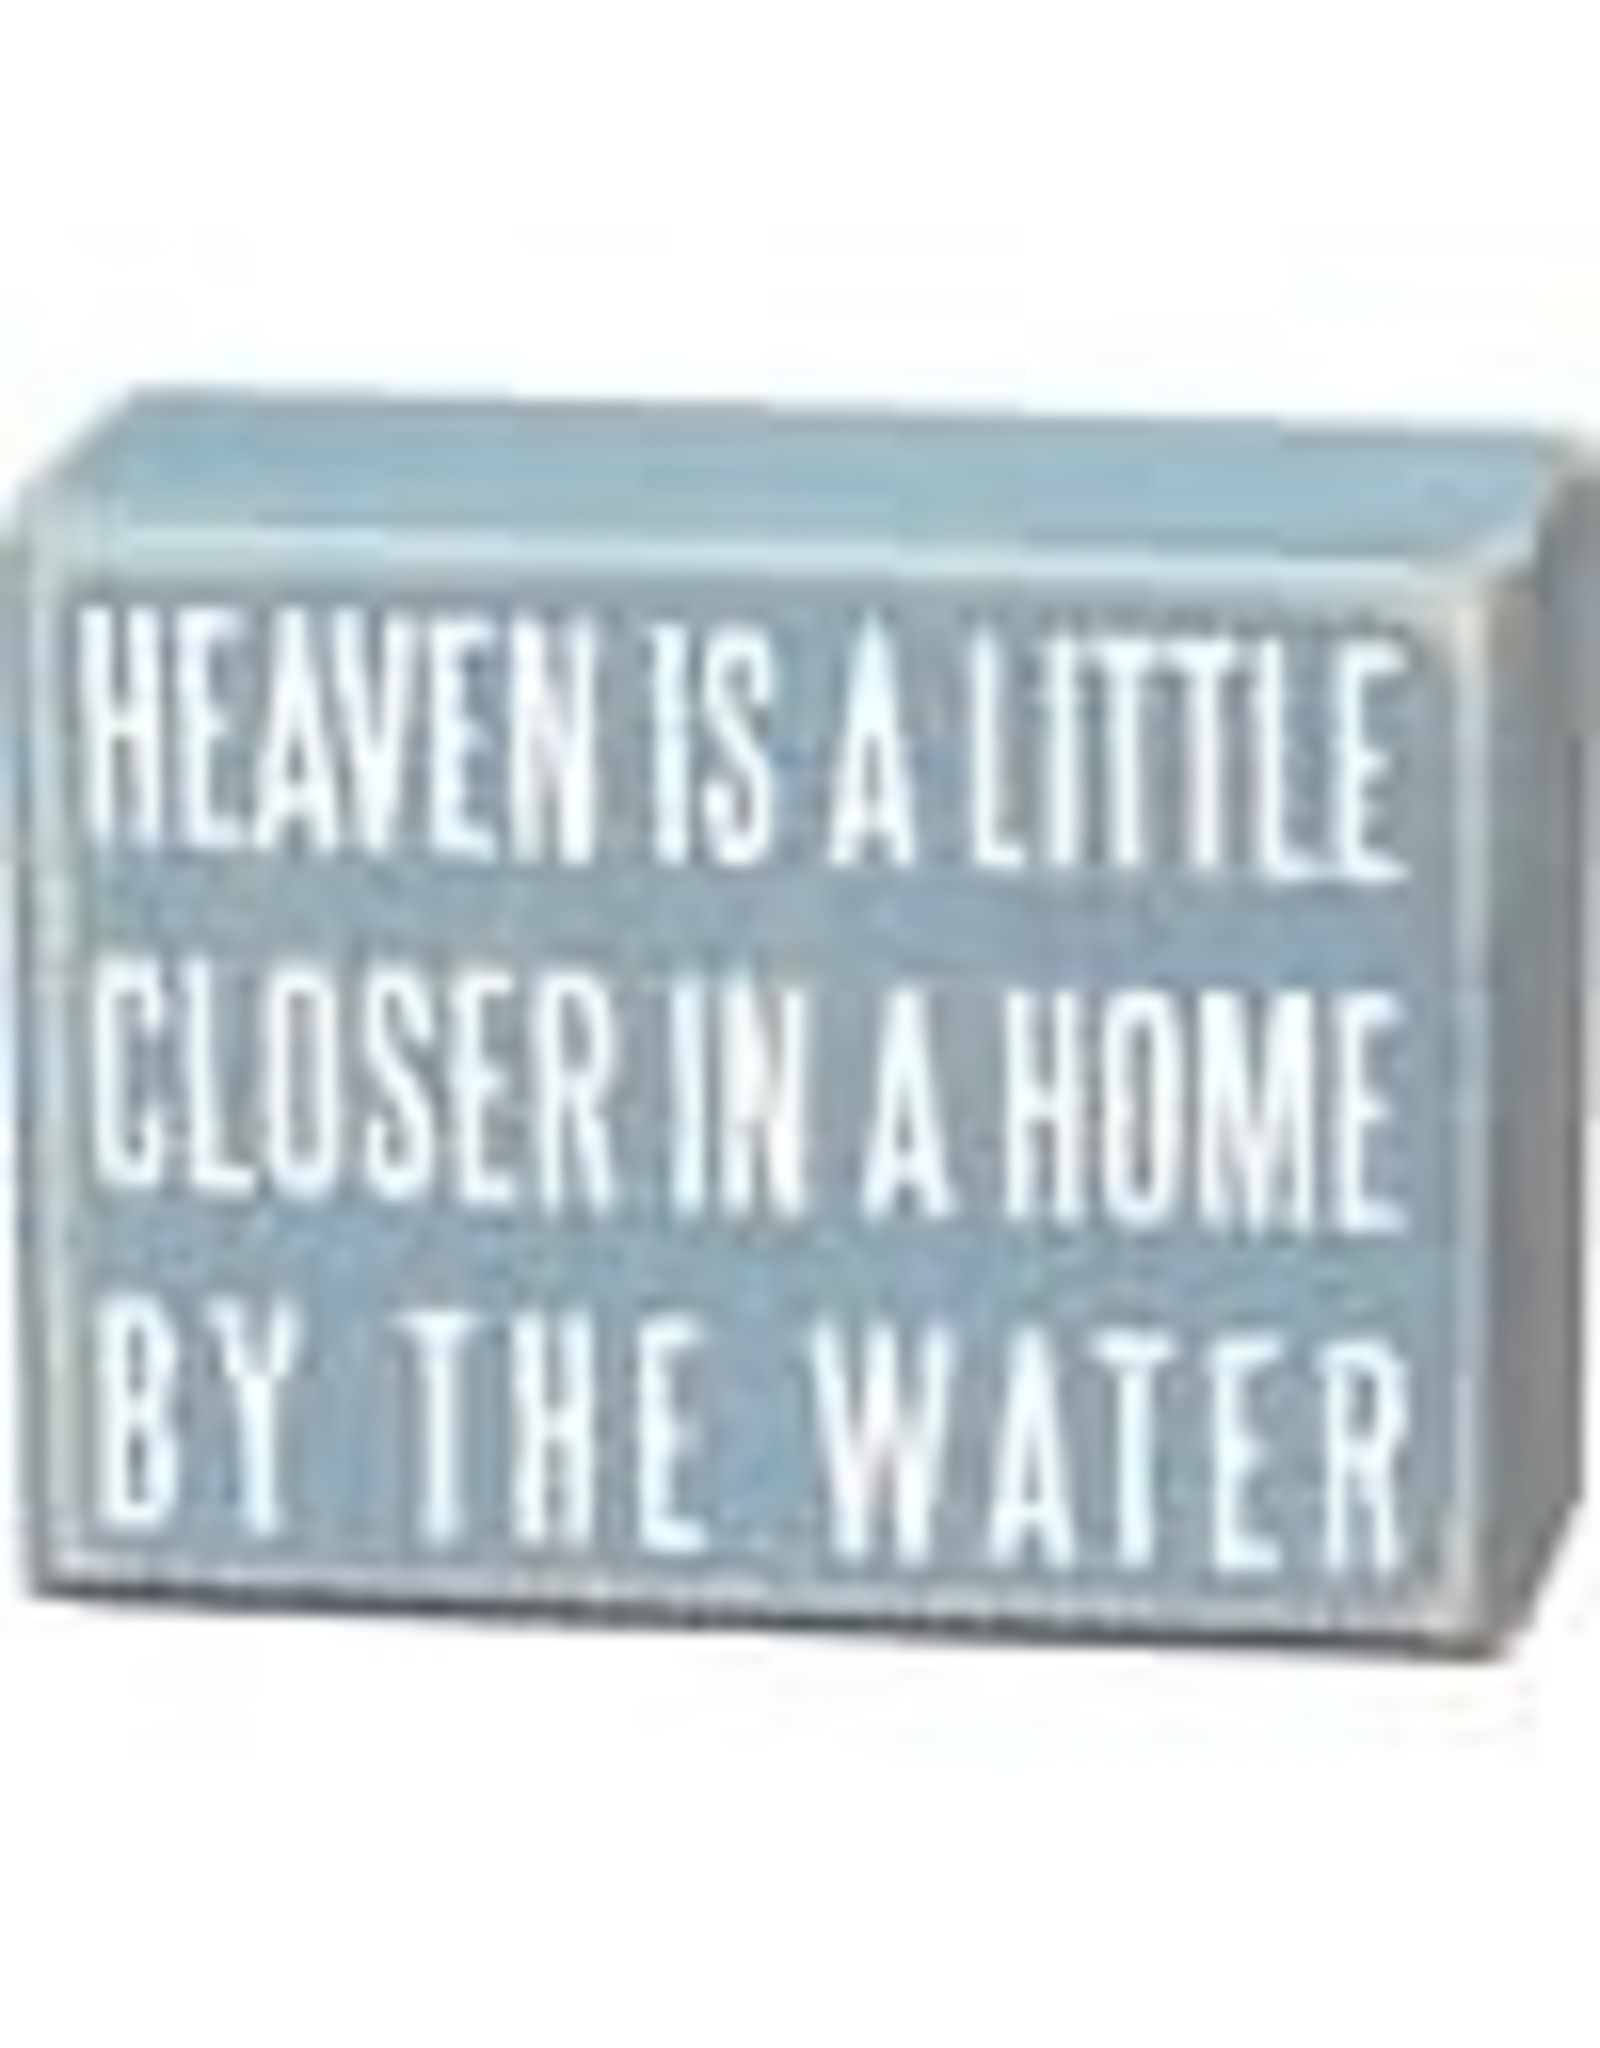 PRIMITIVES BY KATHY BEACH LOVER BLOCK SIGNS HEAVEN IS CLOSER BY THE WATER